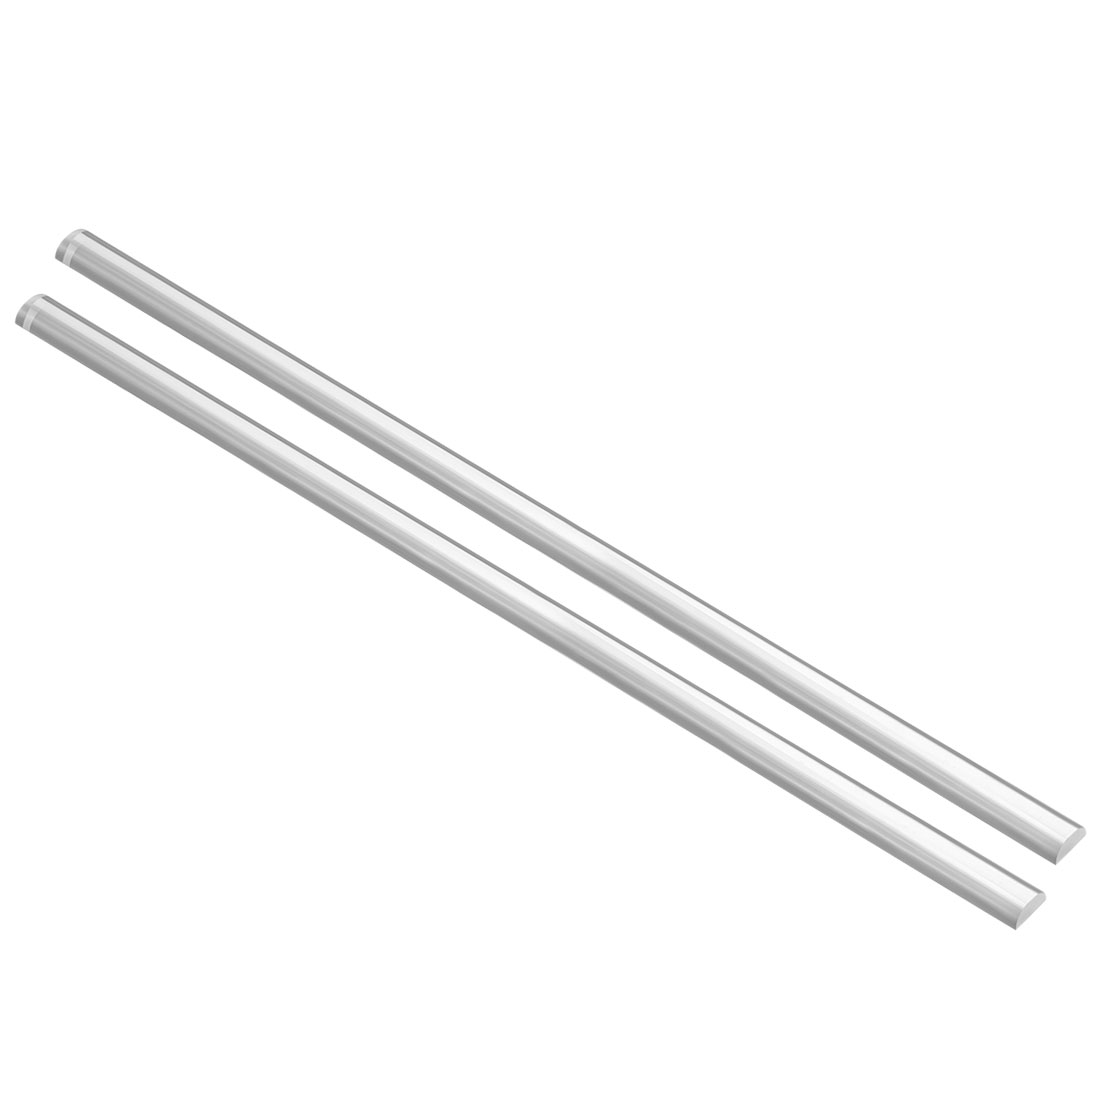 5mmx10mmx500mm Semicircle Shape Solid Acrylic Rod PMMA Extruded Bar Clear 2Pcs